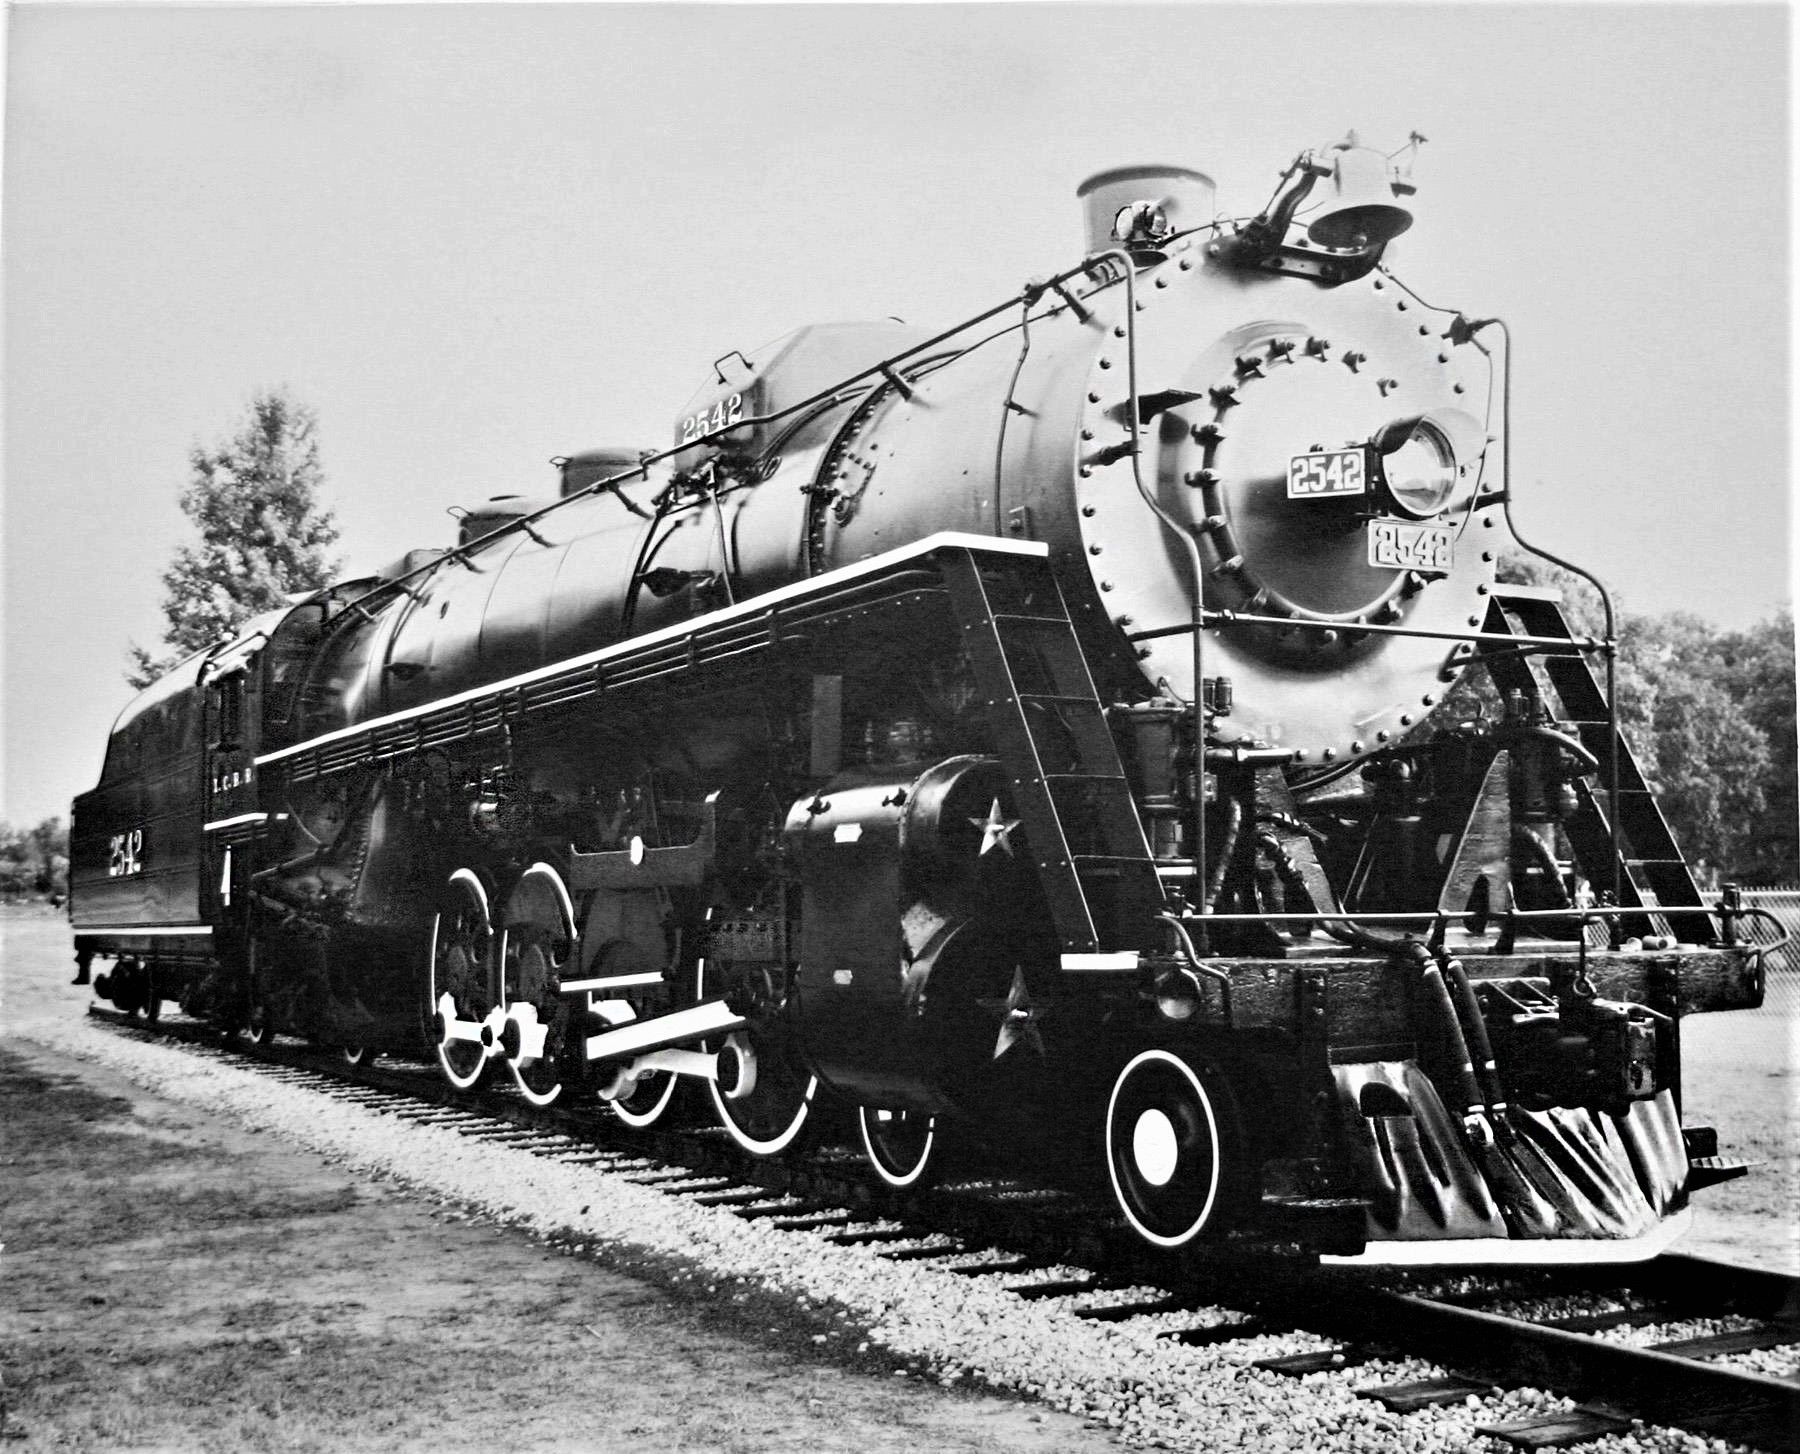 Old photo of ICRR locomotive #2542, a 4-8-2 that was donated to the city of  McComb, MS in 1962.